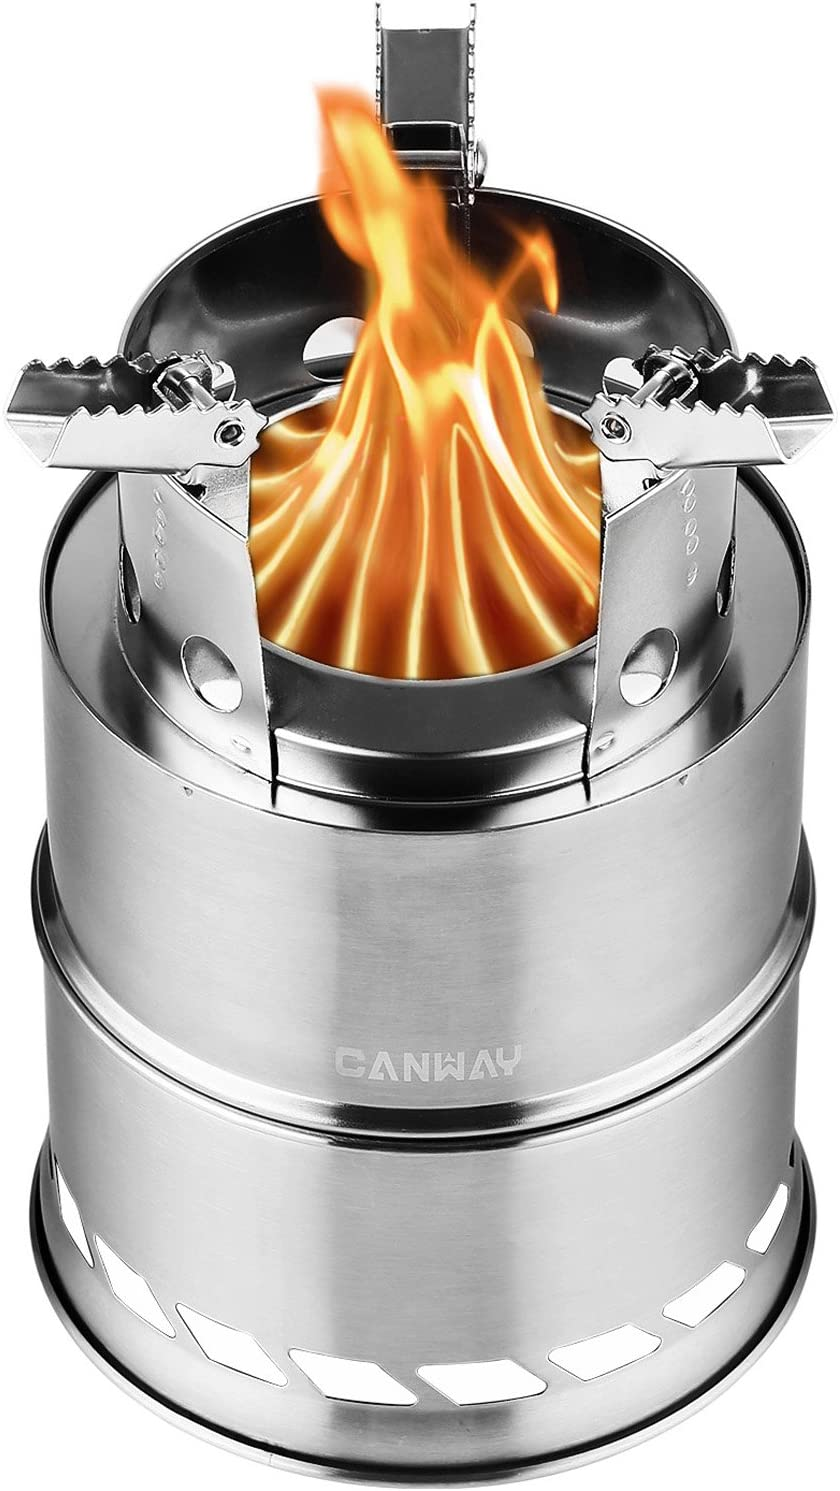 CANWAY Camping Stove, Wood Stove Backpacking Stove,Portable Stainless Steel Wood Burning Stove with Nylon Carry Bag for Outdoor Backpacking Hiking Traveling Picnic BBQ